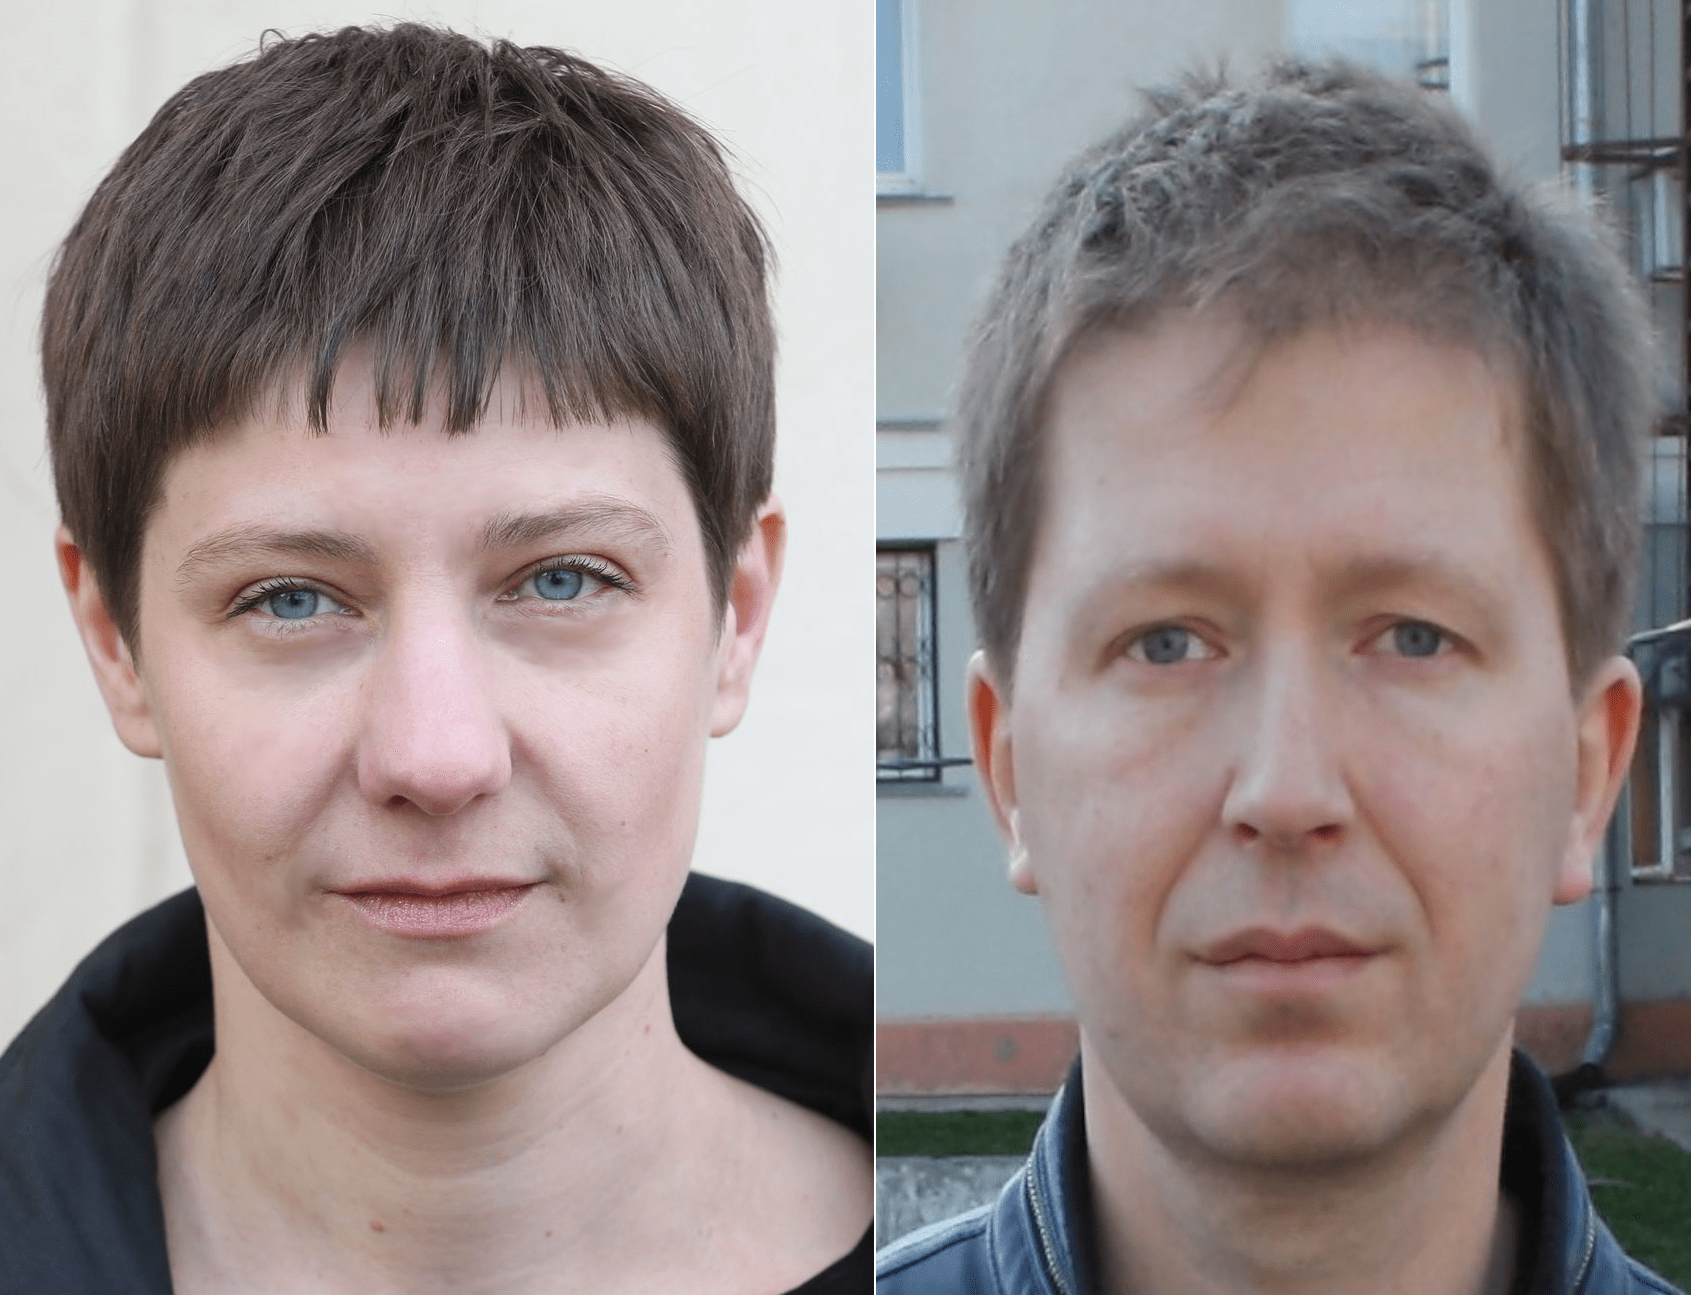 Podcast No. 66: Simon & Sergei – with Irina Borogan and Andrei Soldatov